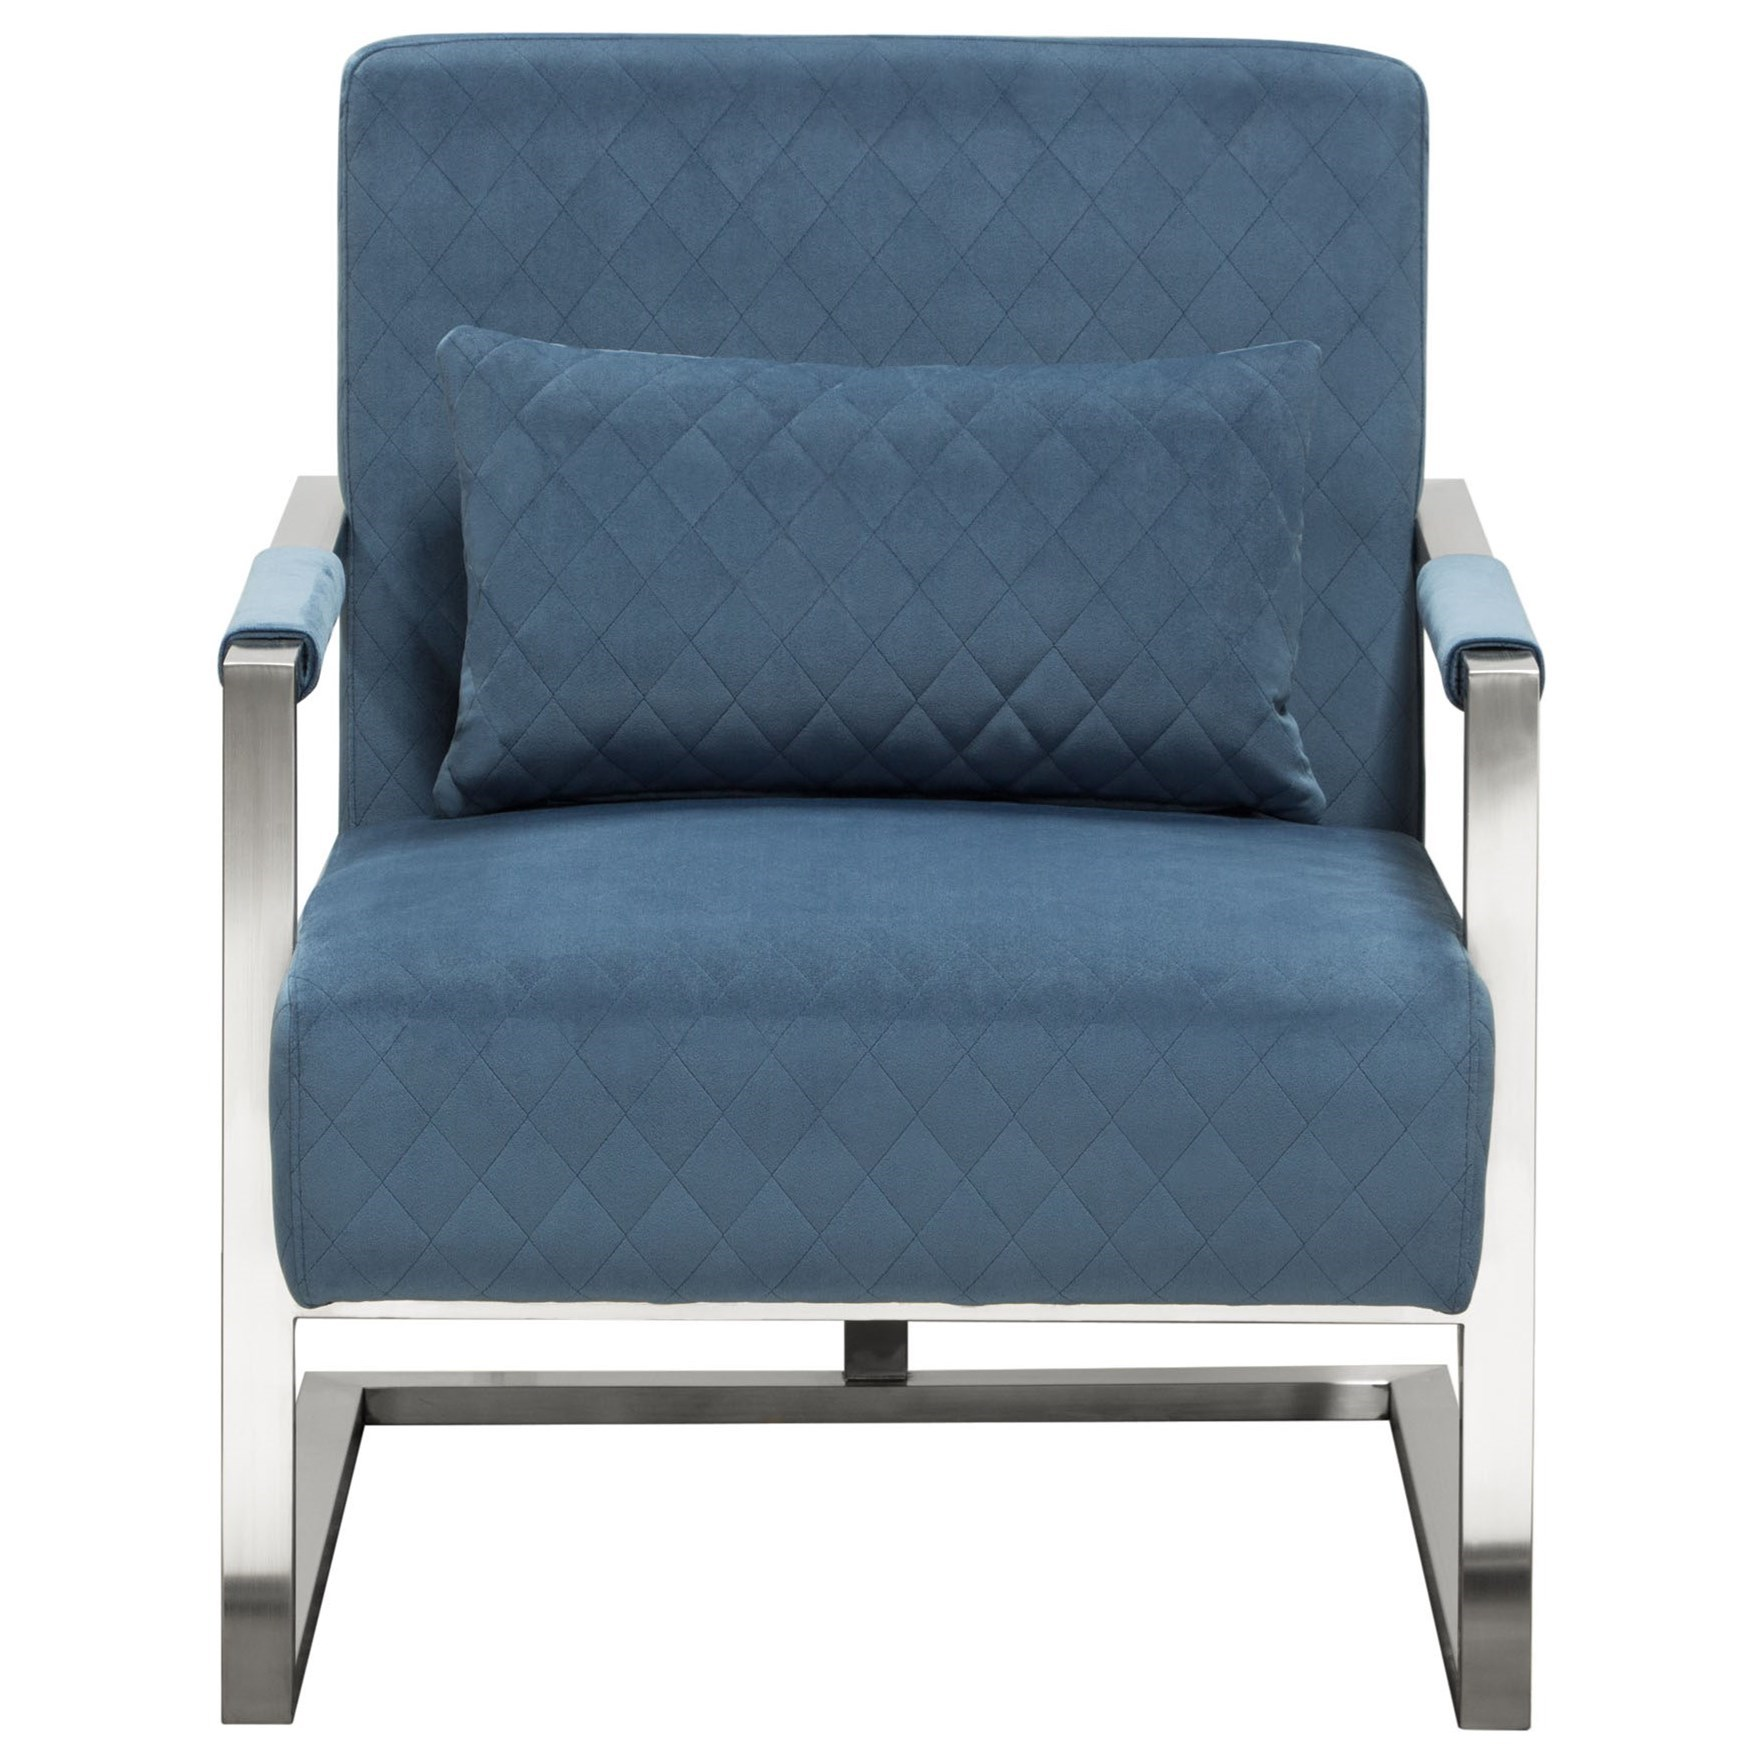 Studio Accent Chair by Diamond Sofa at Red Knot